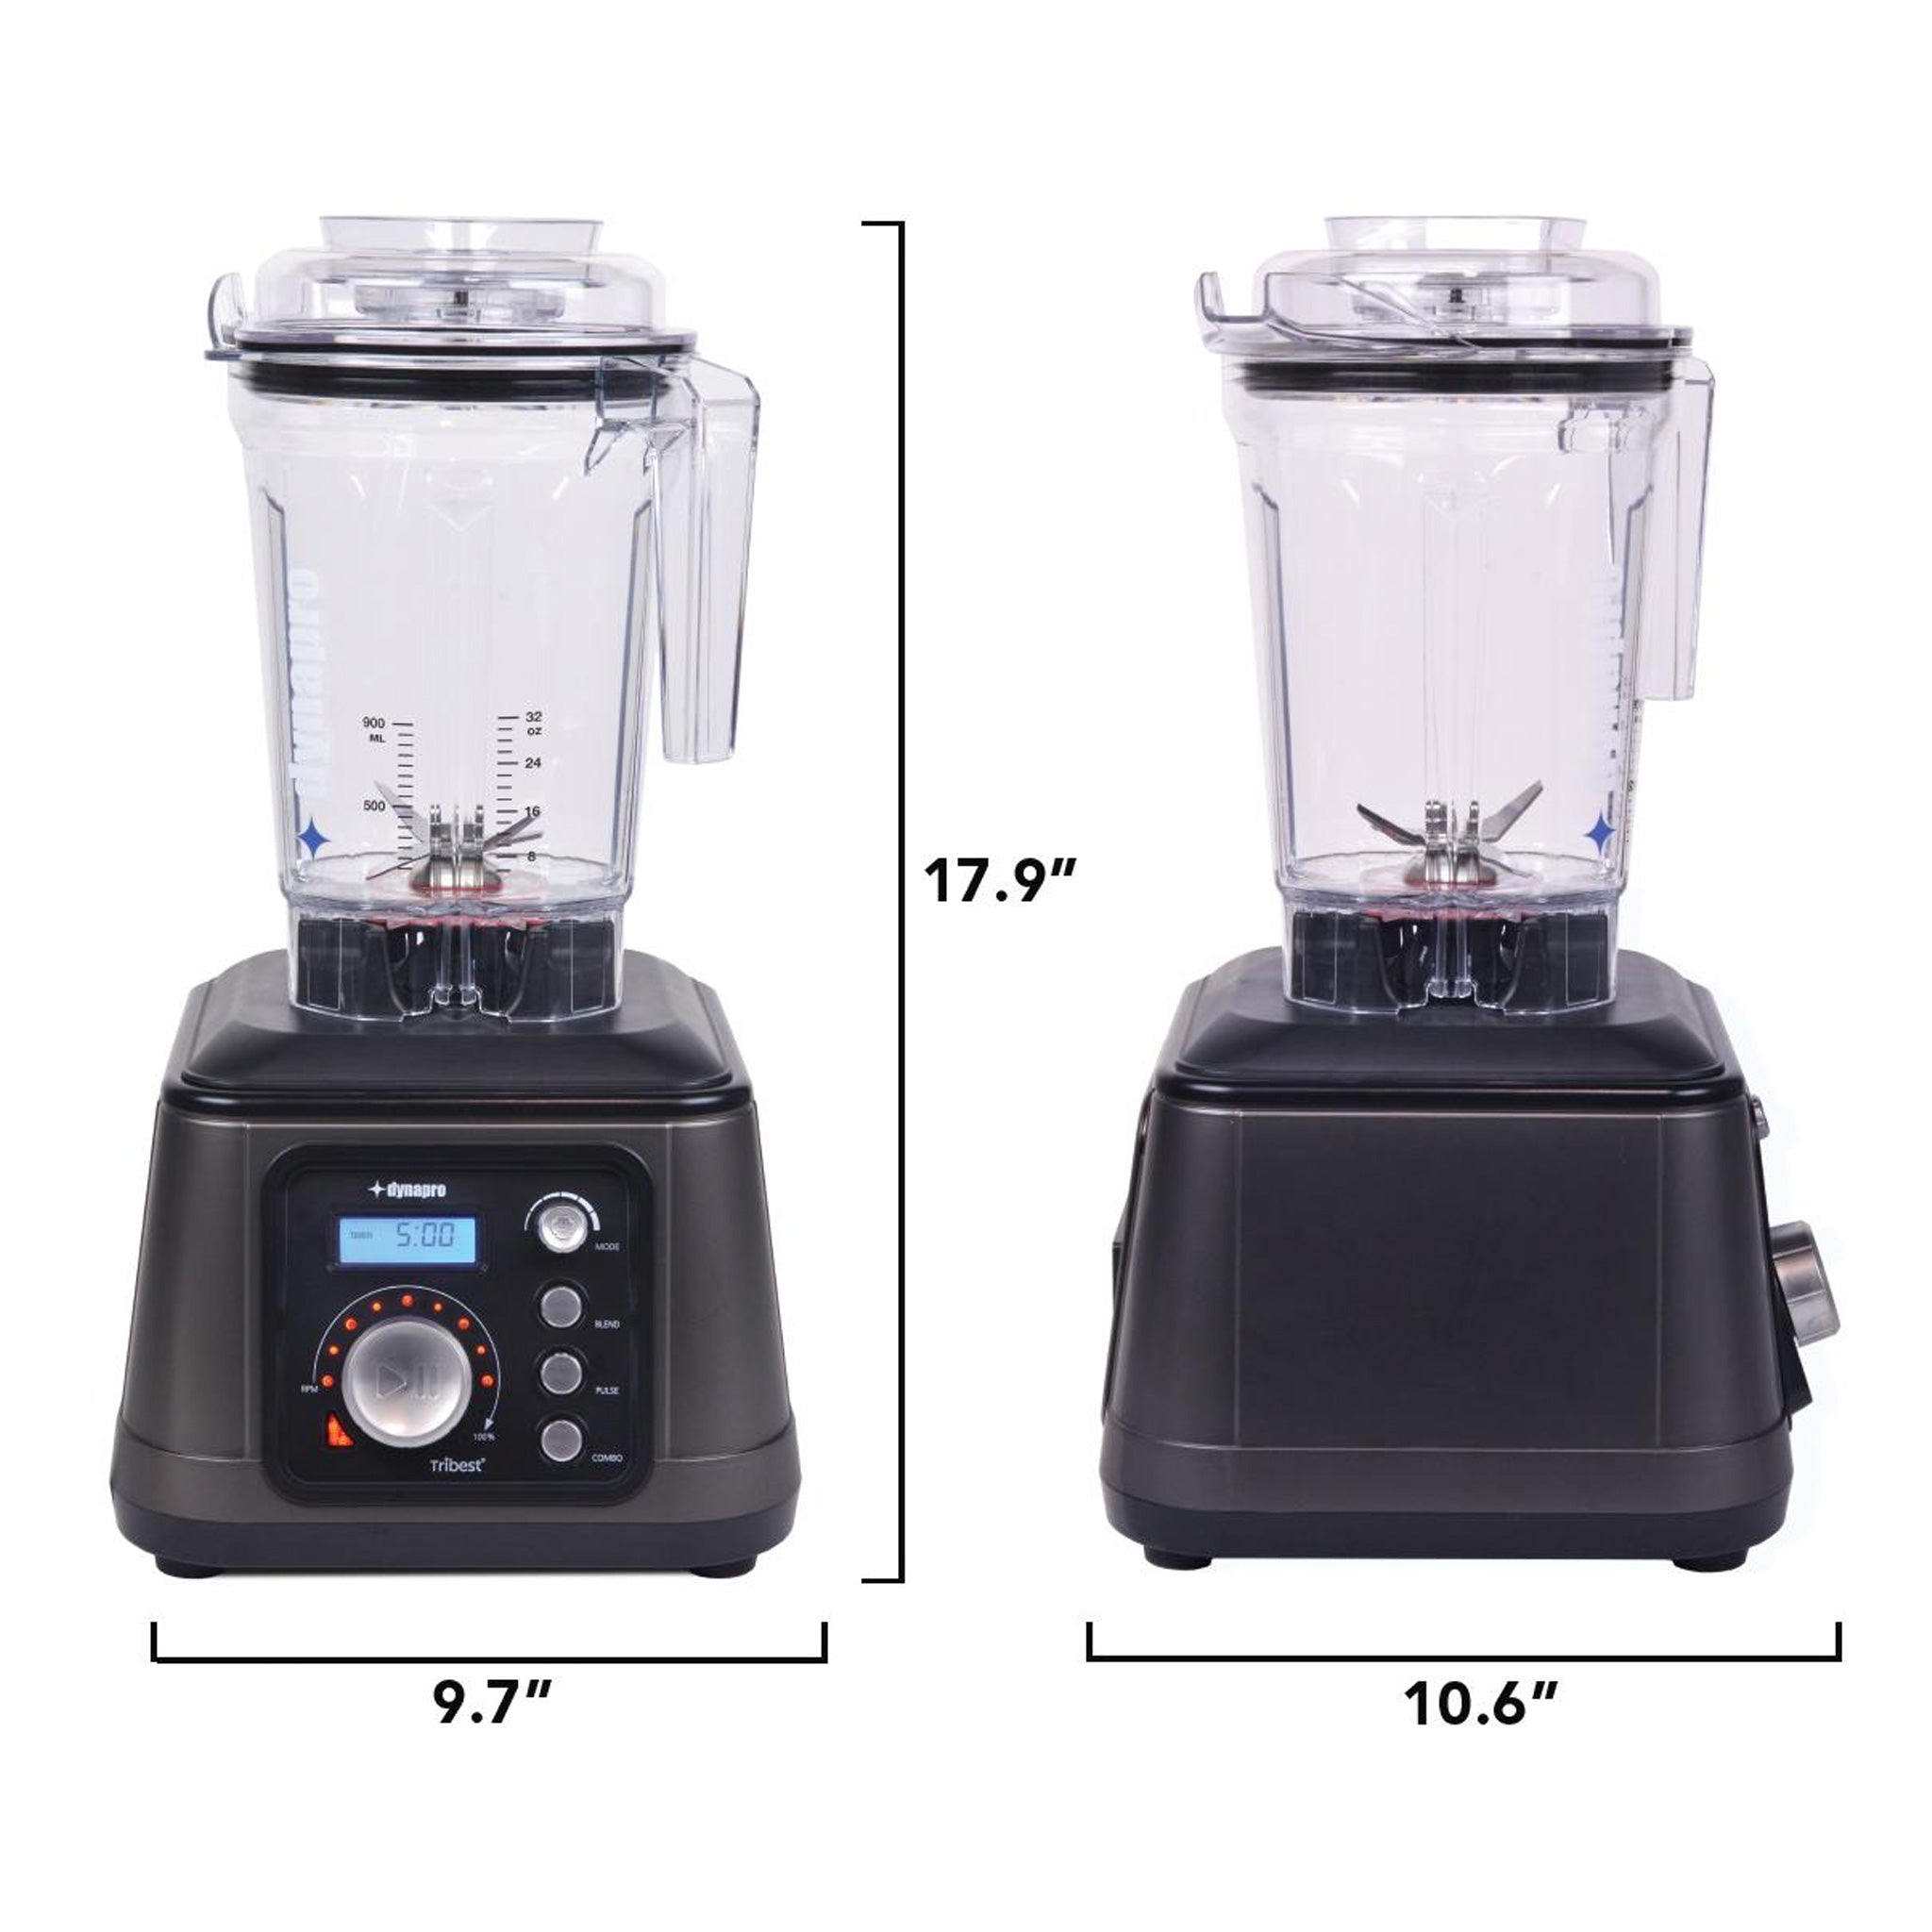 "Dynapro Commercial Vacuum Blender DPS-1050A-B - Measurements 9.7"" W x 10.6"" D x 17.9"" H - Tribest"